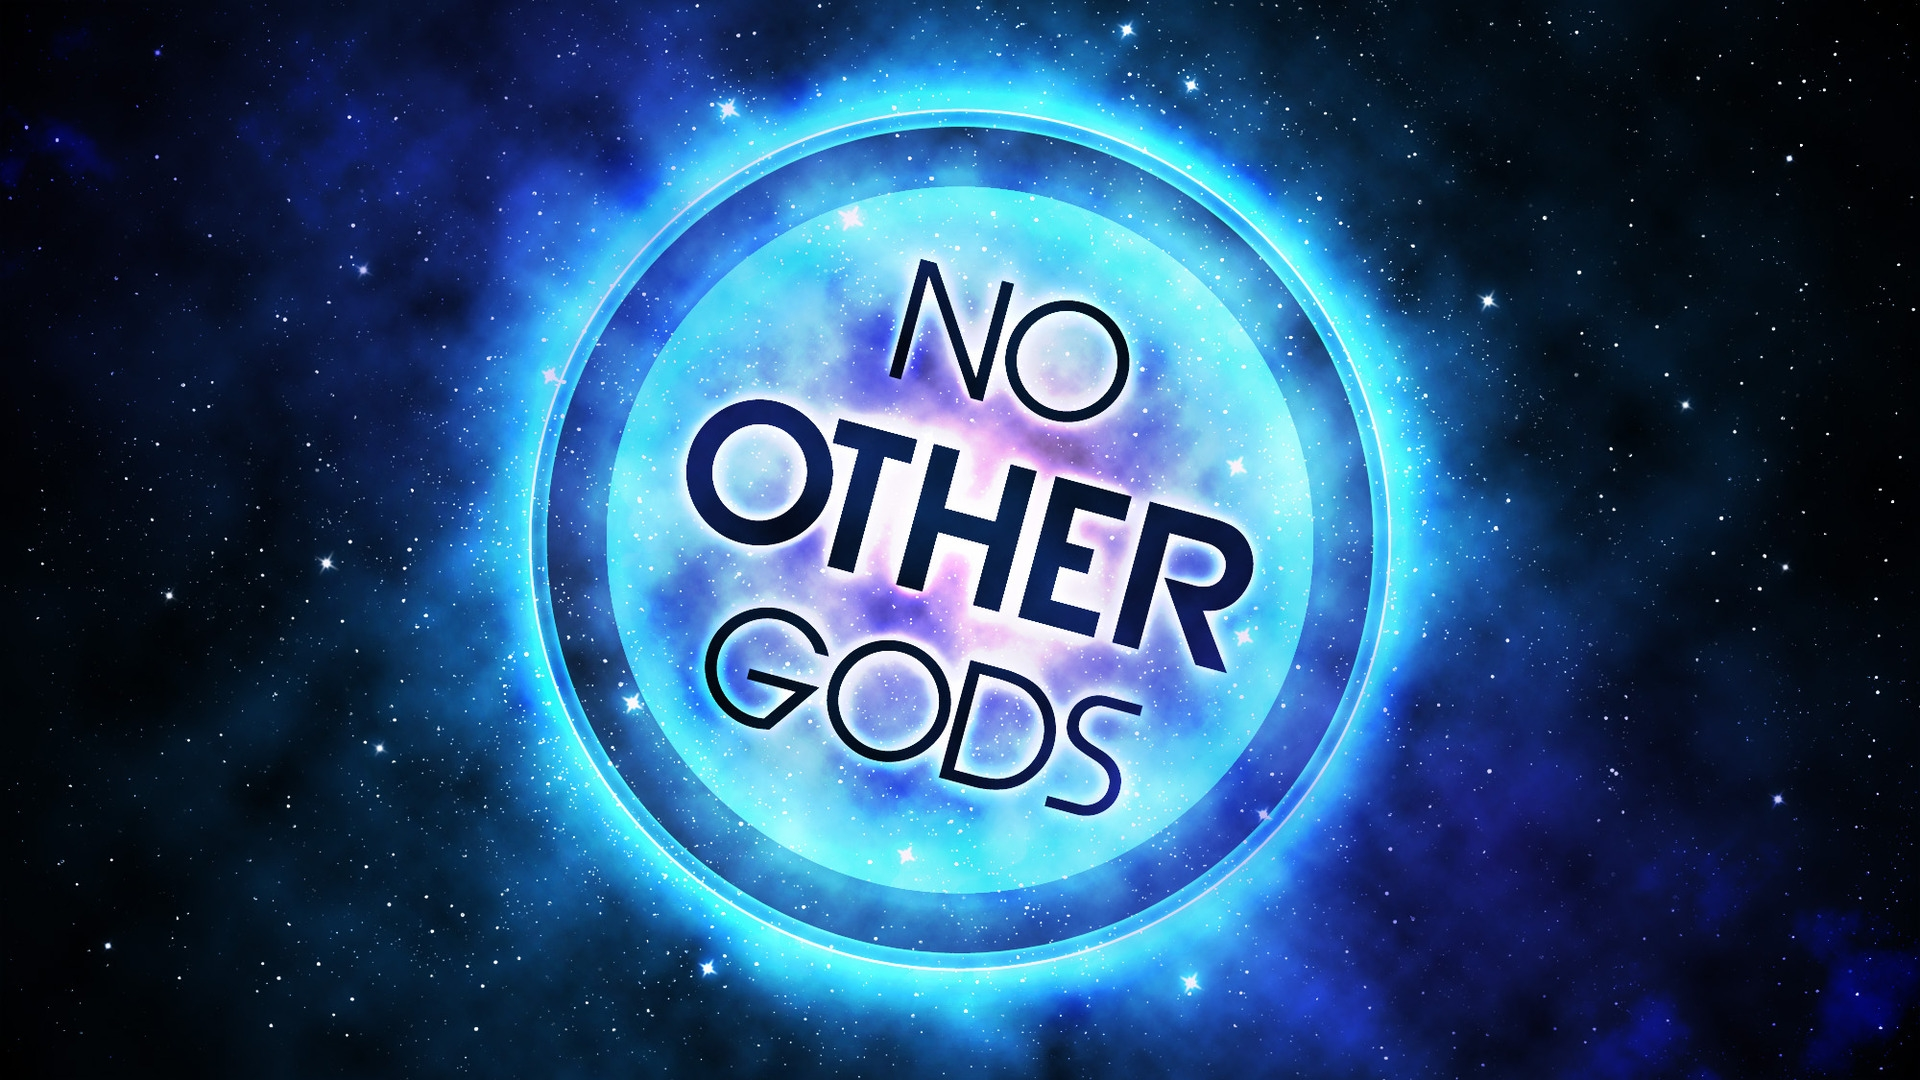 Sunday August 18, 2019 No Other Gods - Pastor Anthony Cox